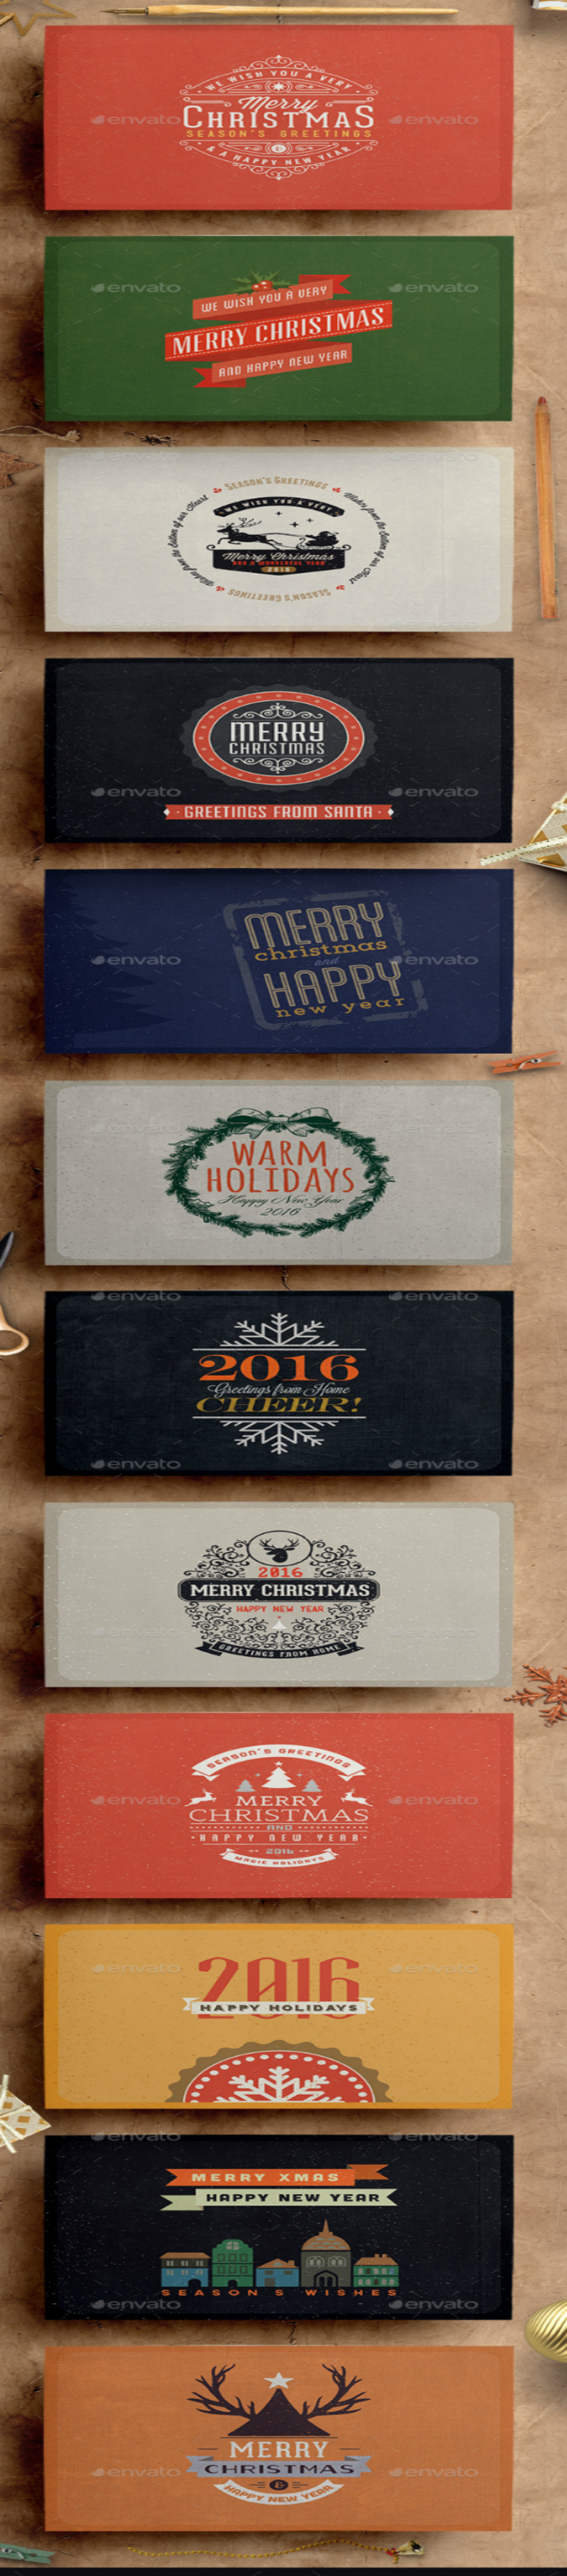 retro-holiday-card-template